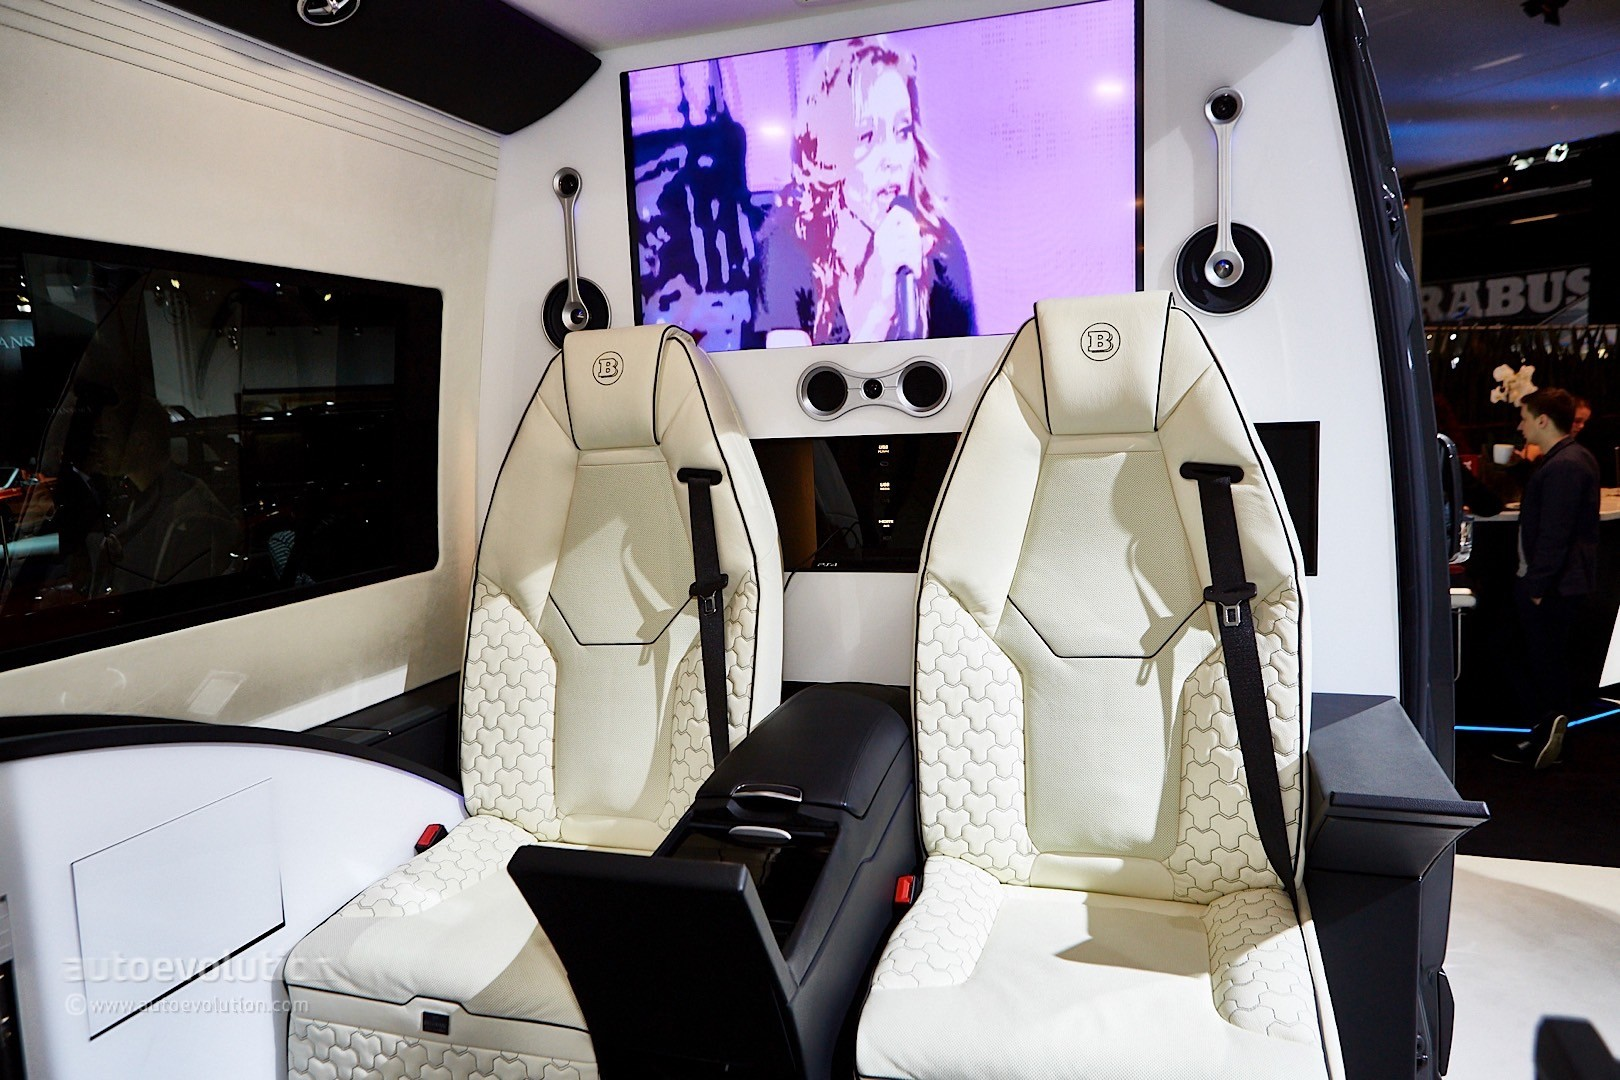 ' ' from the web at 'http://s1.cdn.autoevolution.com/images/news/gallery/brabus-sprinter-and-v-class-fill-the-luxury-van-gap-in-frankfurt-live-photos_15.jpg'